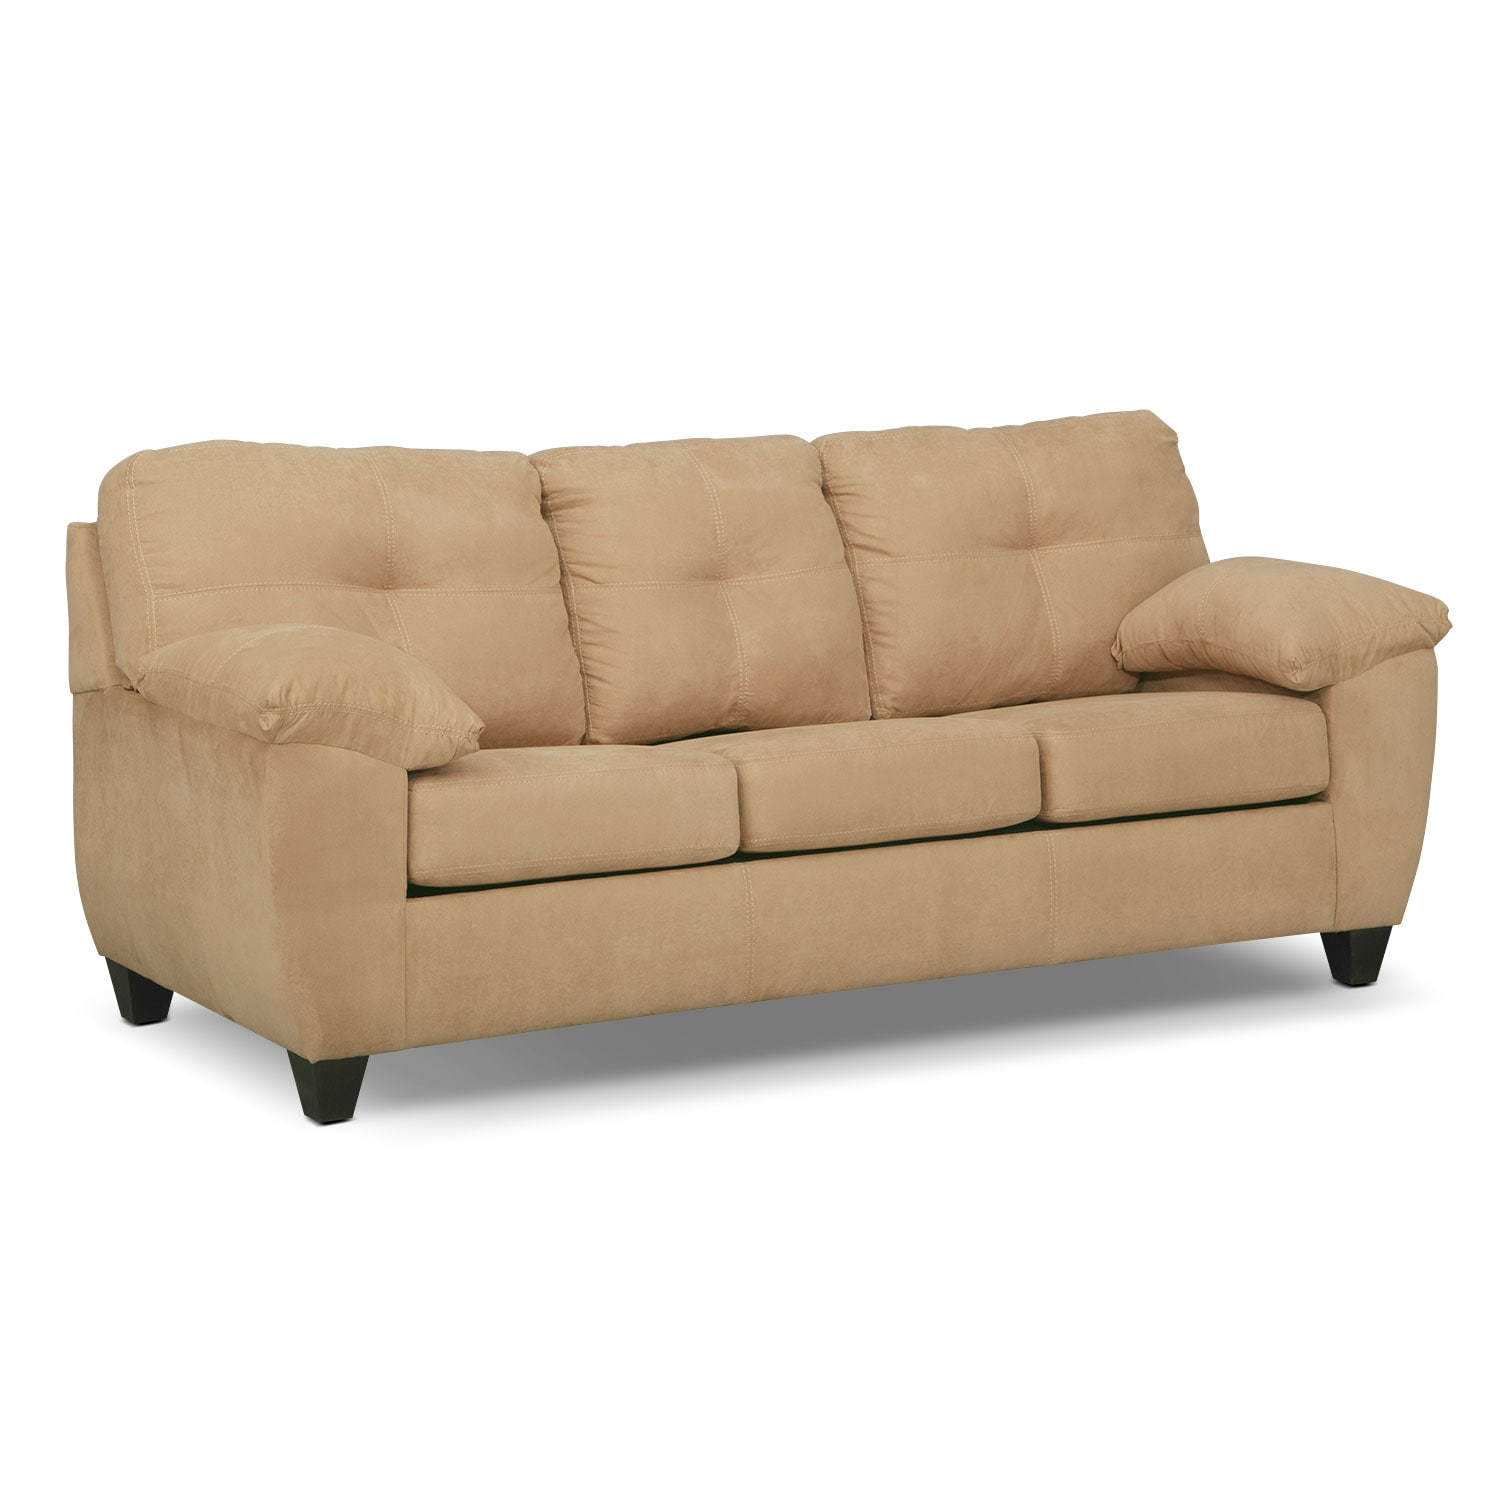 Sofa Bed For Sale In Quezon City: Rialto Queen Innerspring Sleeper Sofa - Camel